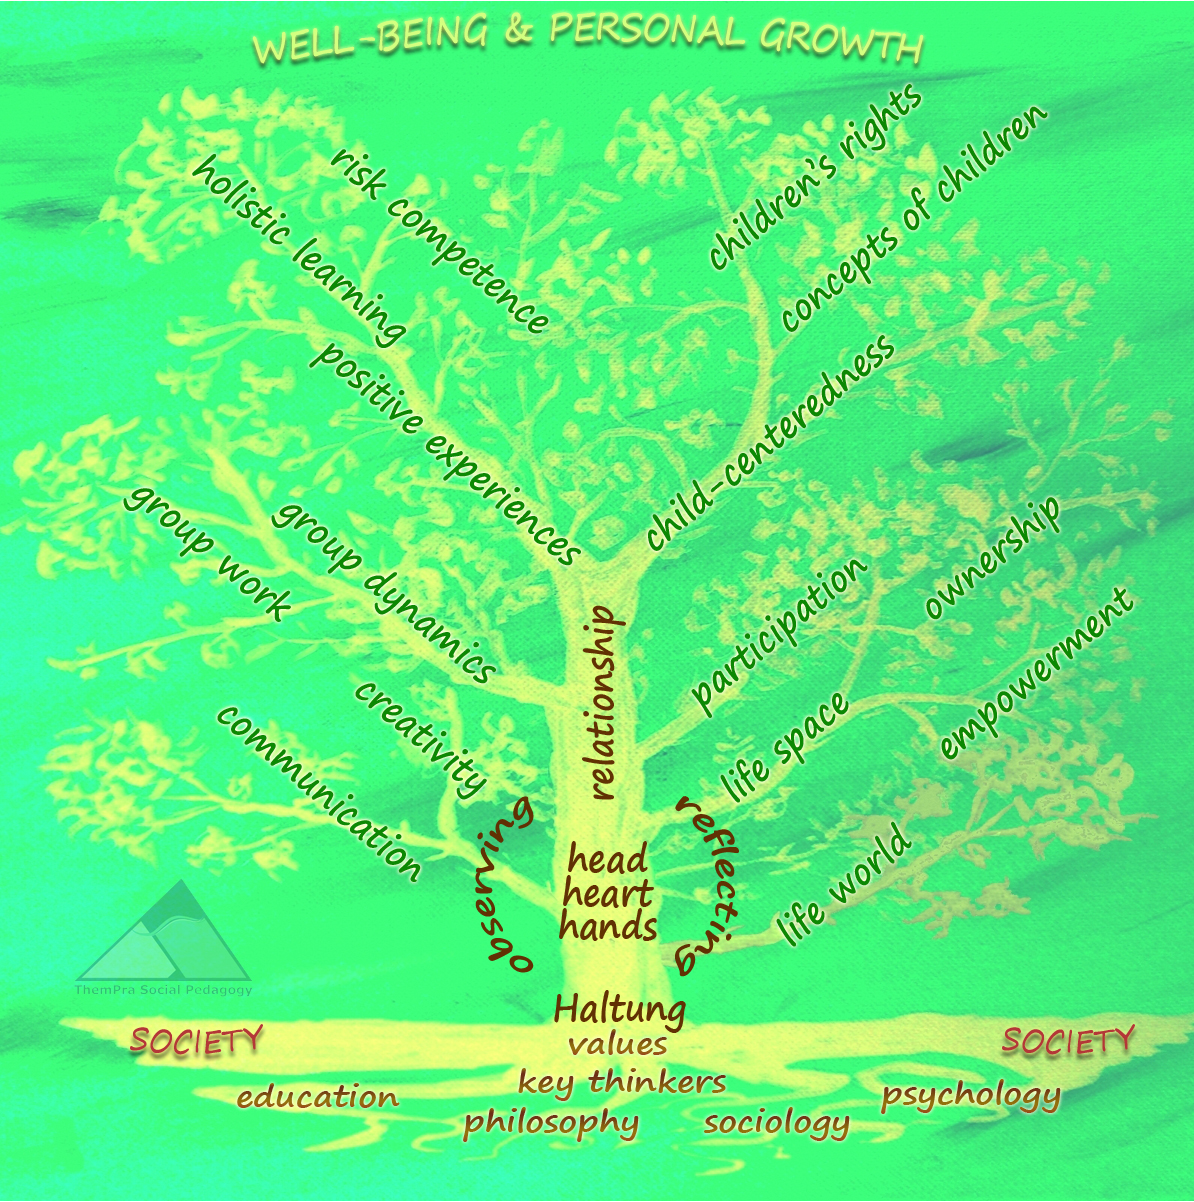 social pedagogy tree - copyright by ThemPra 2009